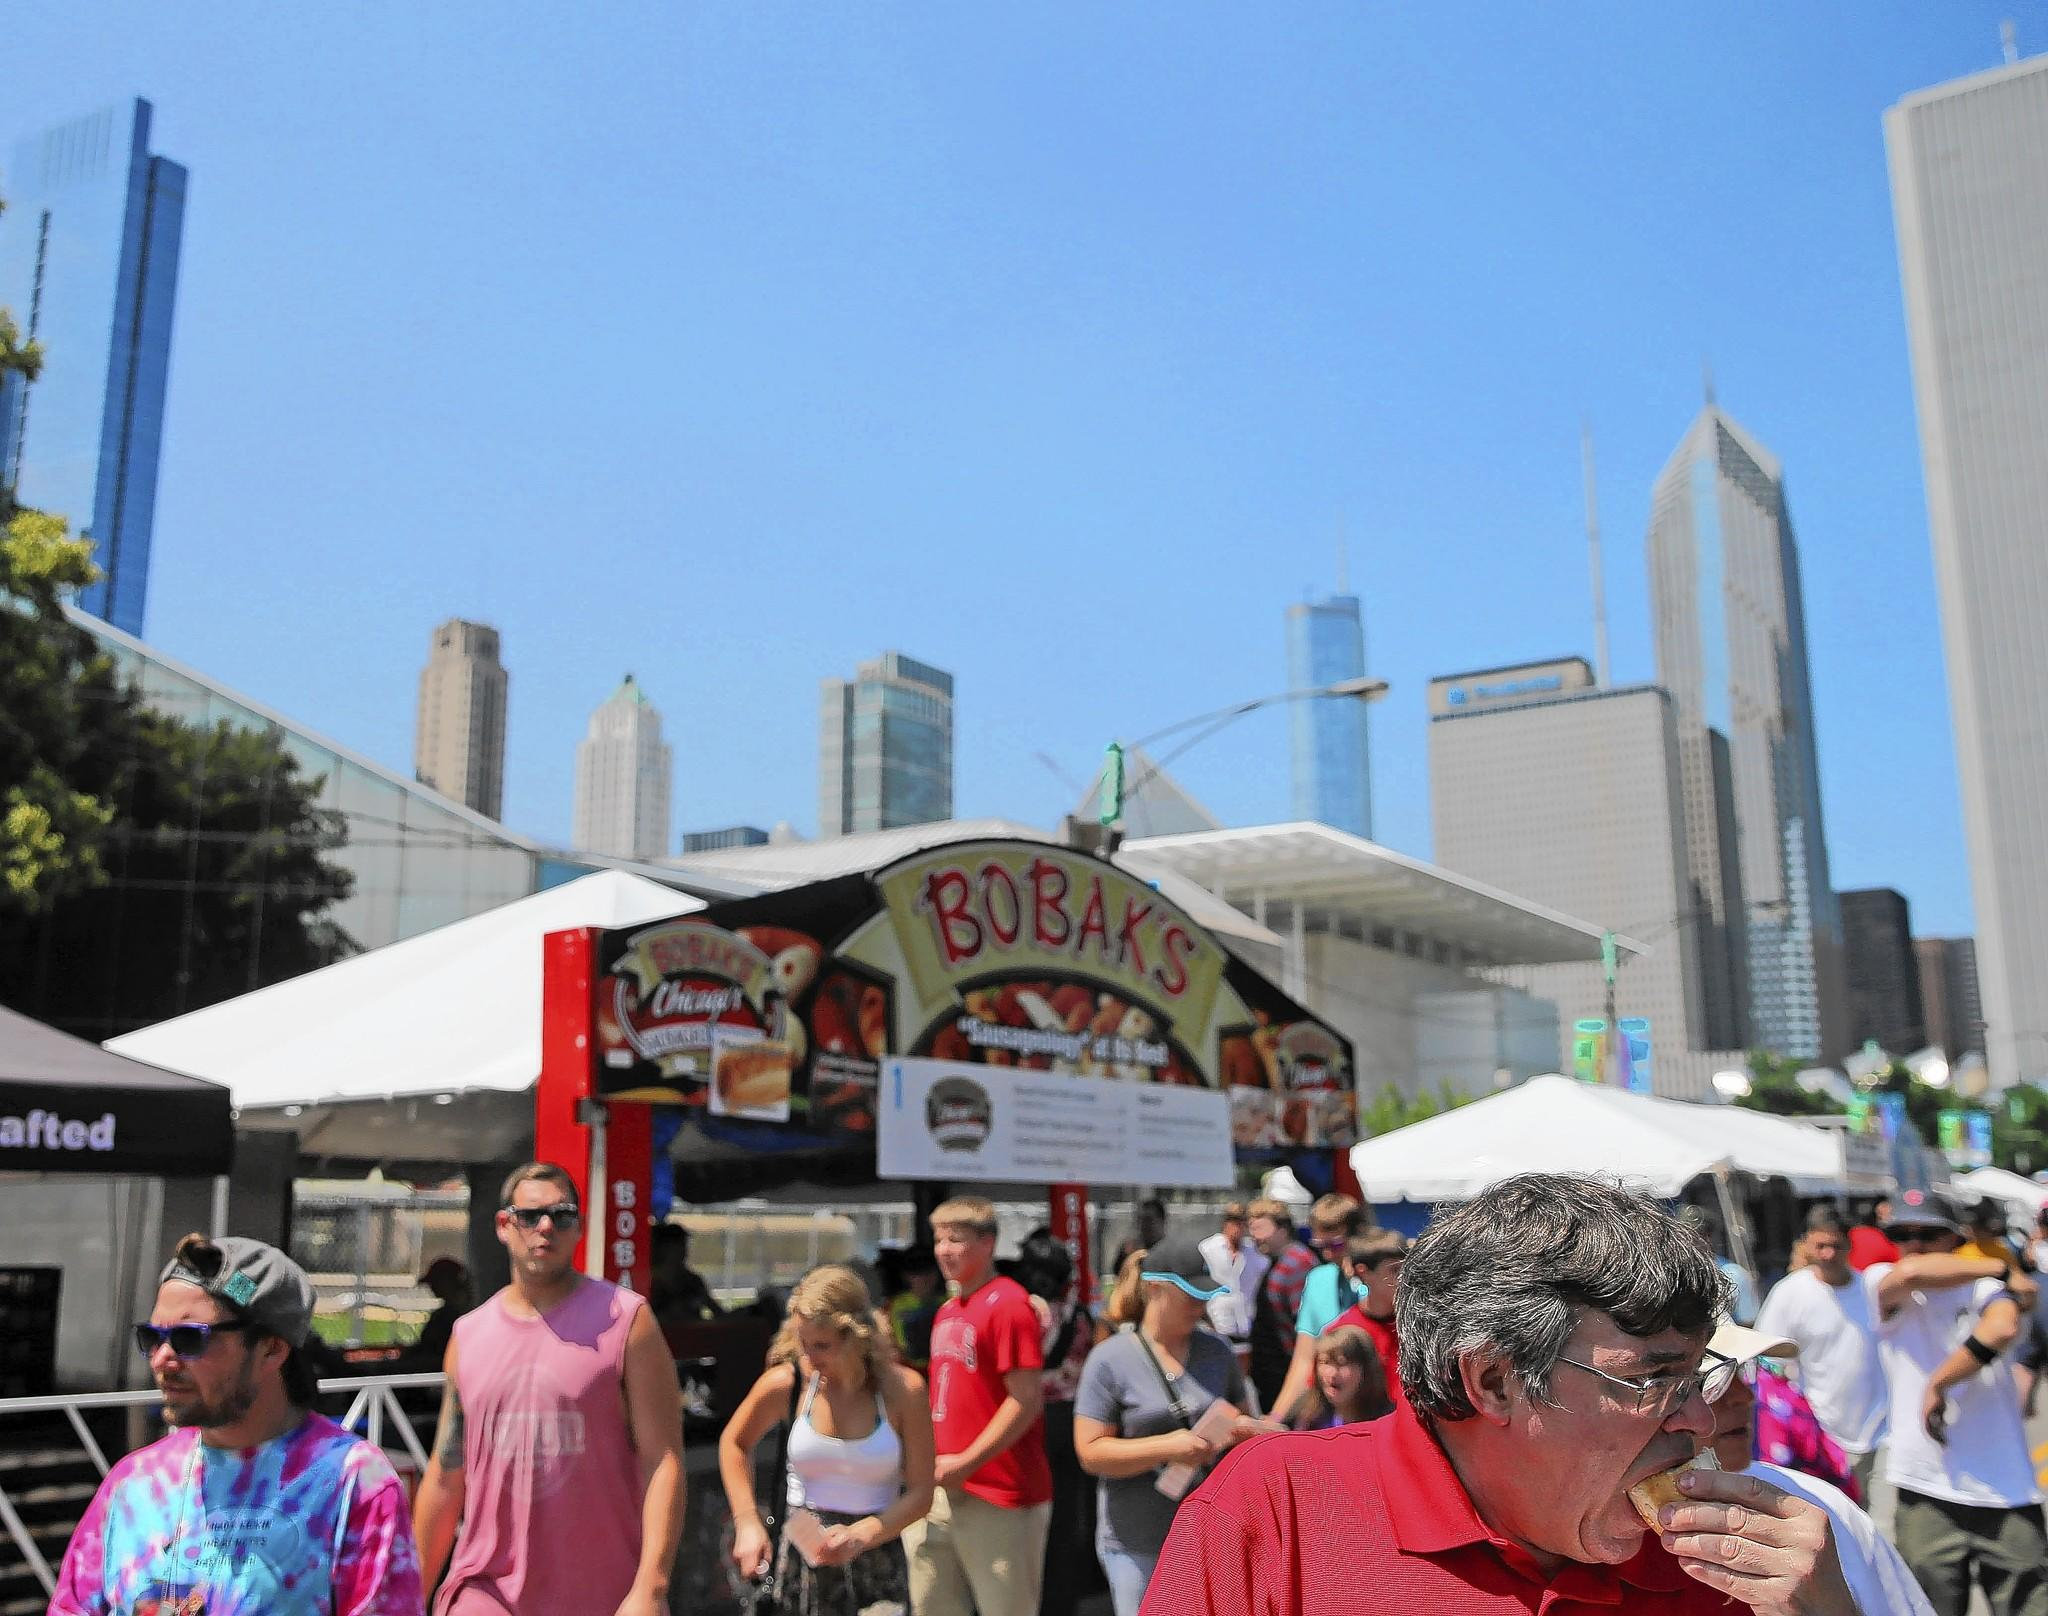 Bobak's will be among the 64 vendors at Taste of Chicago, which runs July 9-13 in Grant Park.